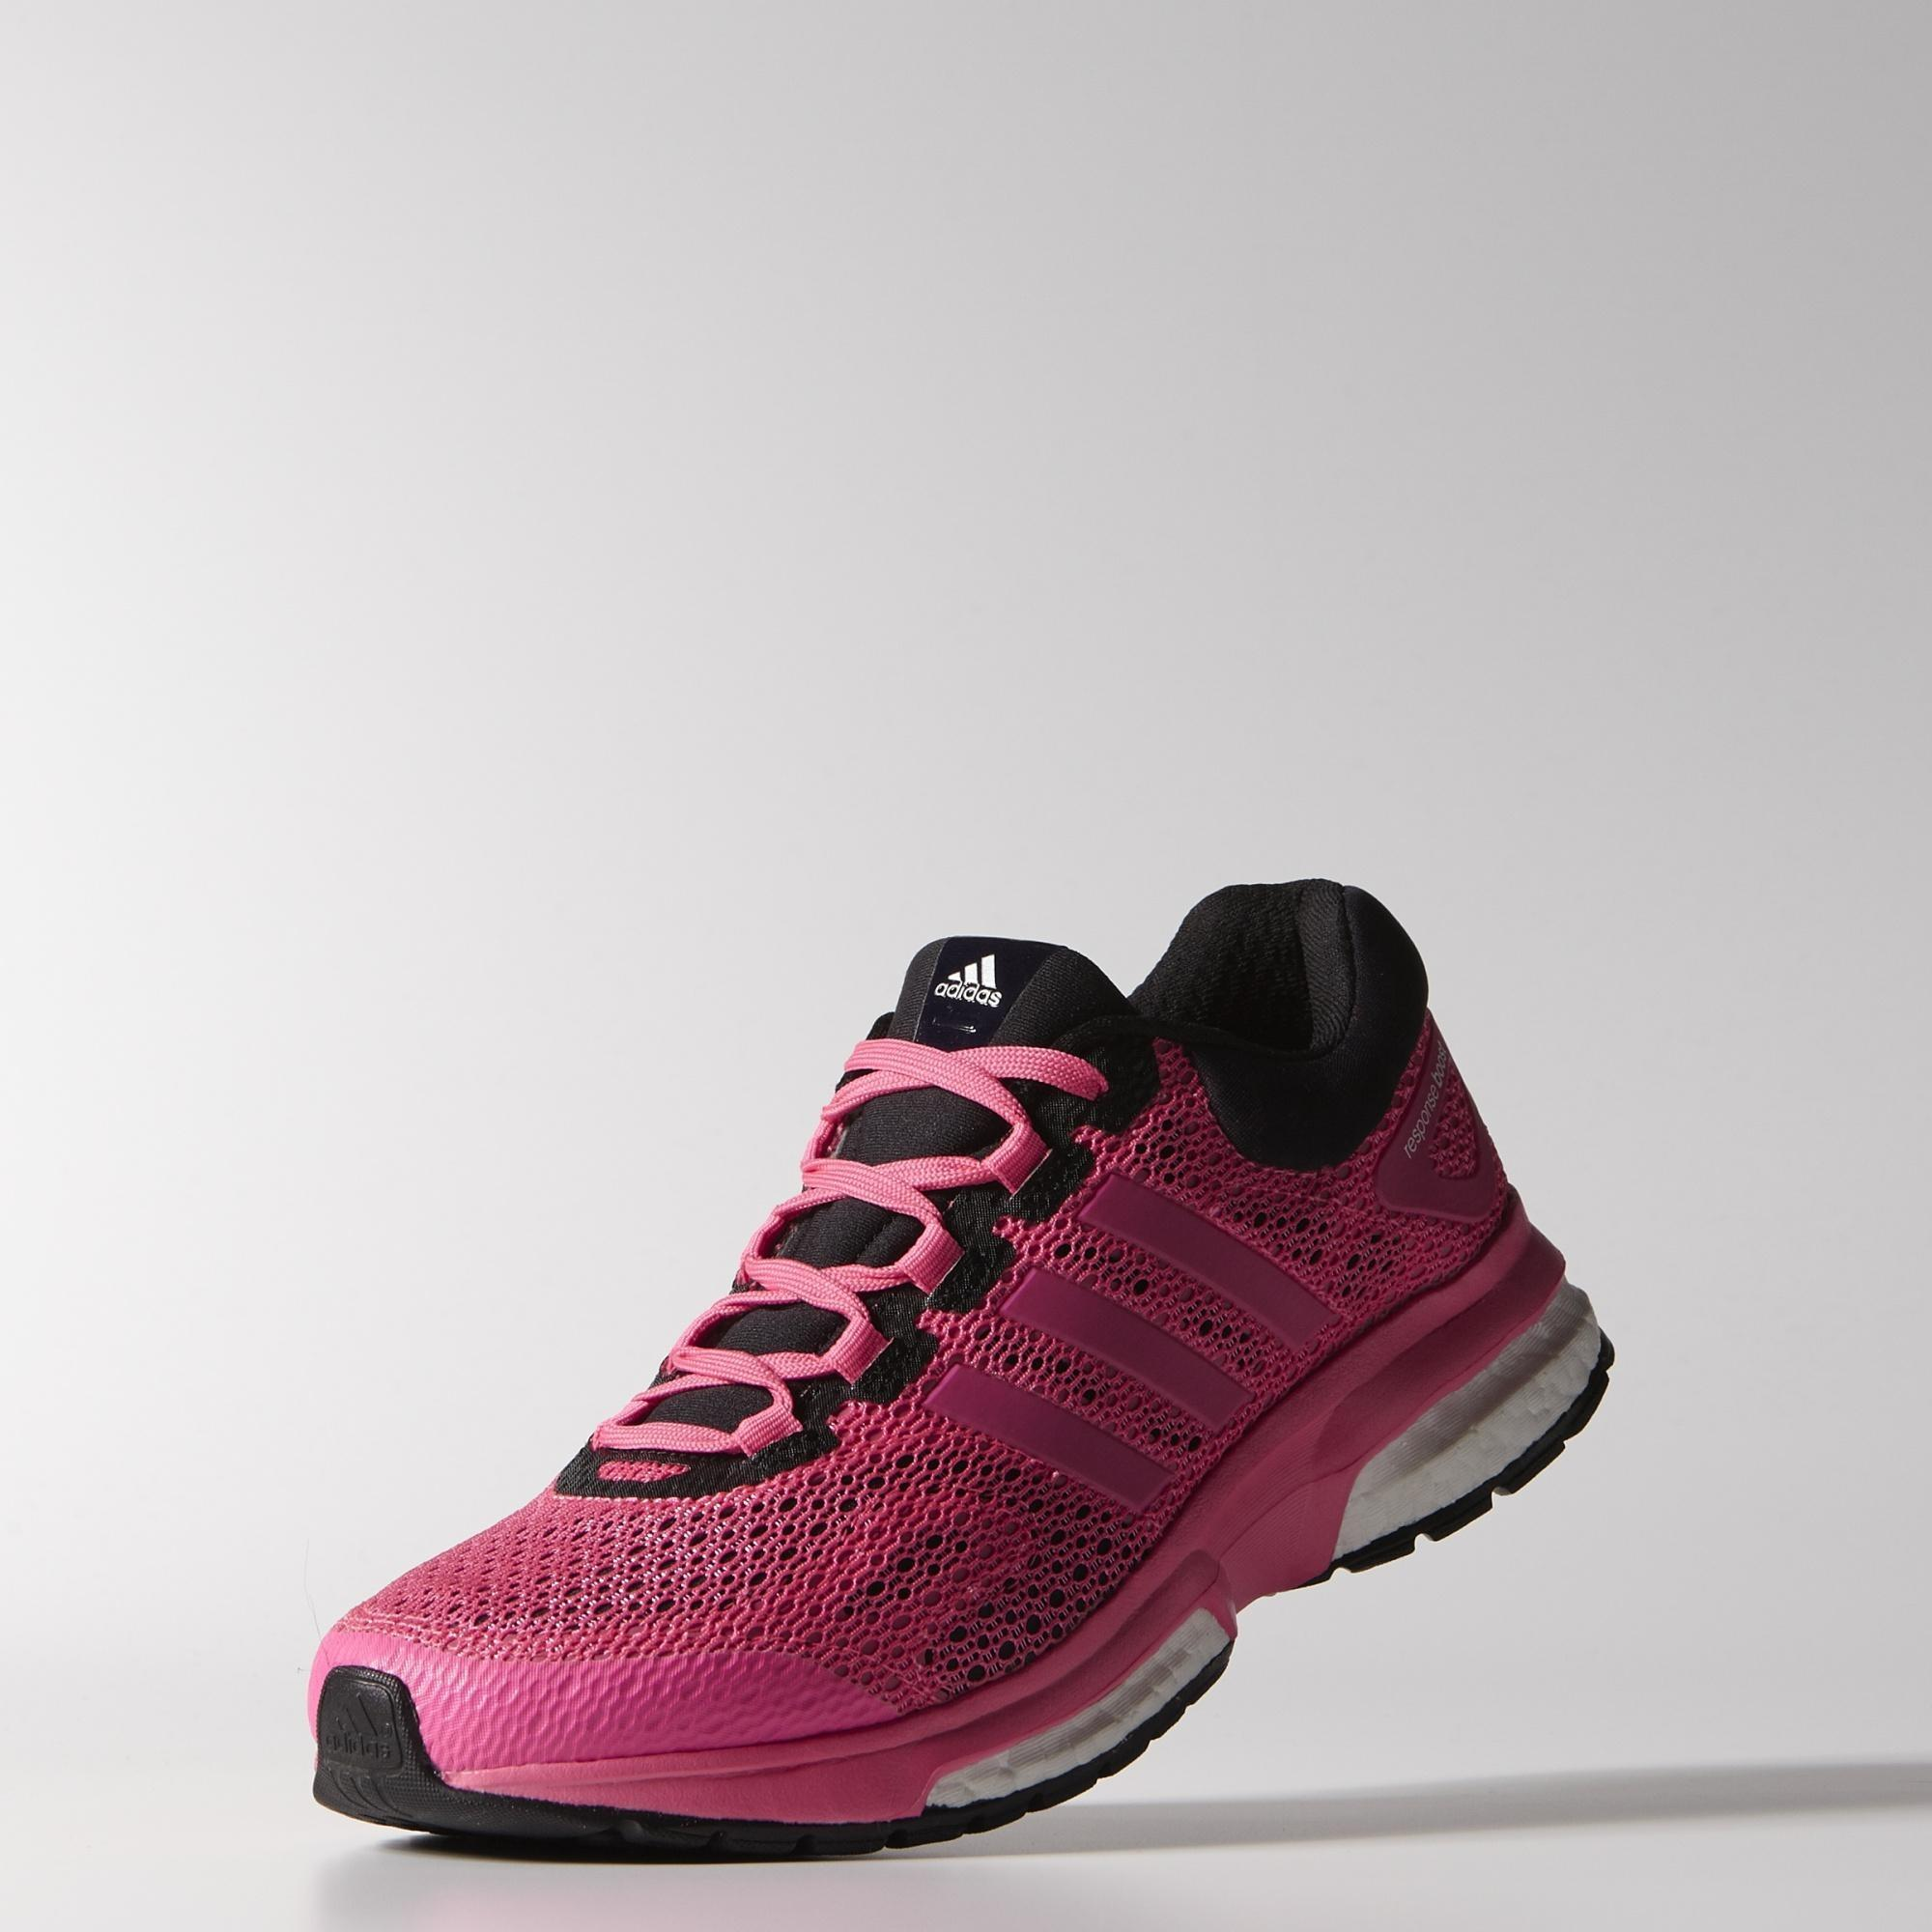 Adidas Womens Response Boost Techfit Running Shoes - Solar